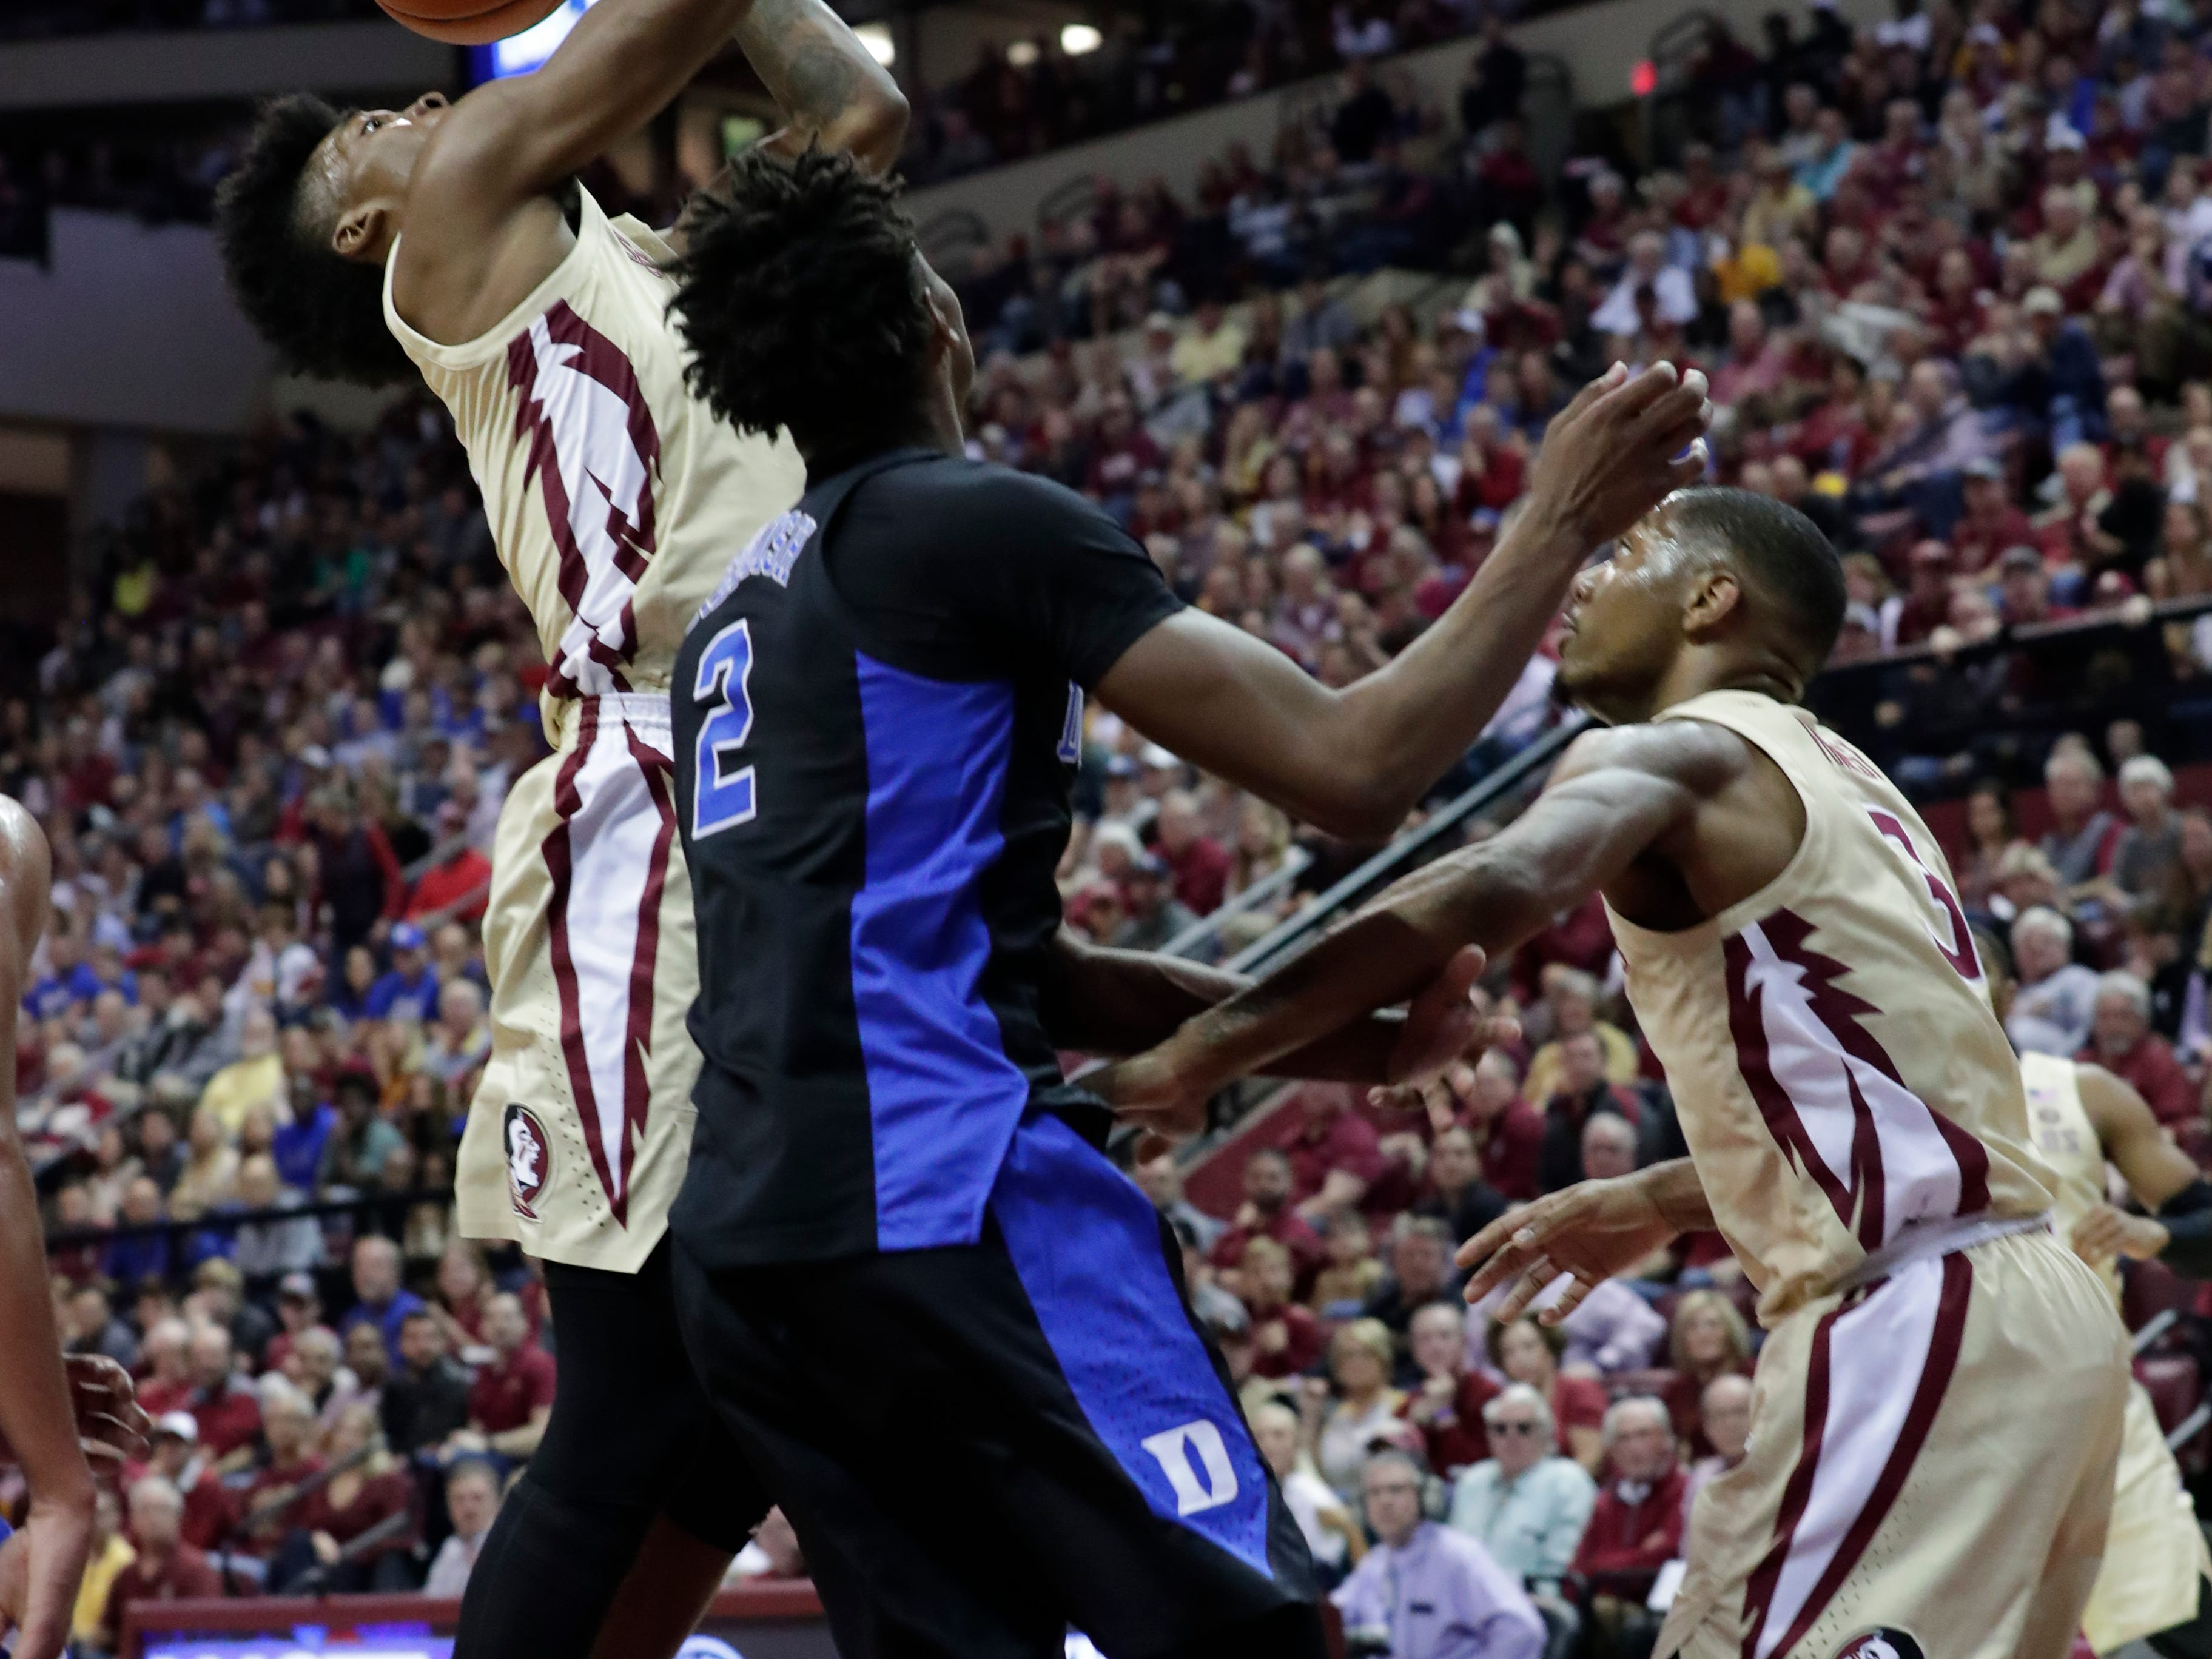 Florida State Seminoles guard Terance Mann (14) shoots for two. Ranked 13 in the ACC, the Florida State Seminoles host the number 1 team, the Duke Blue Devils, at the Tucker Civic Center, Saturday, Jan. 12, 2019.